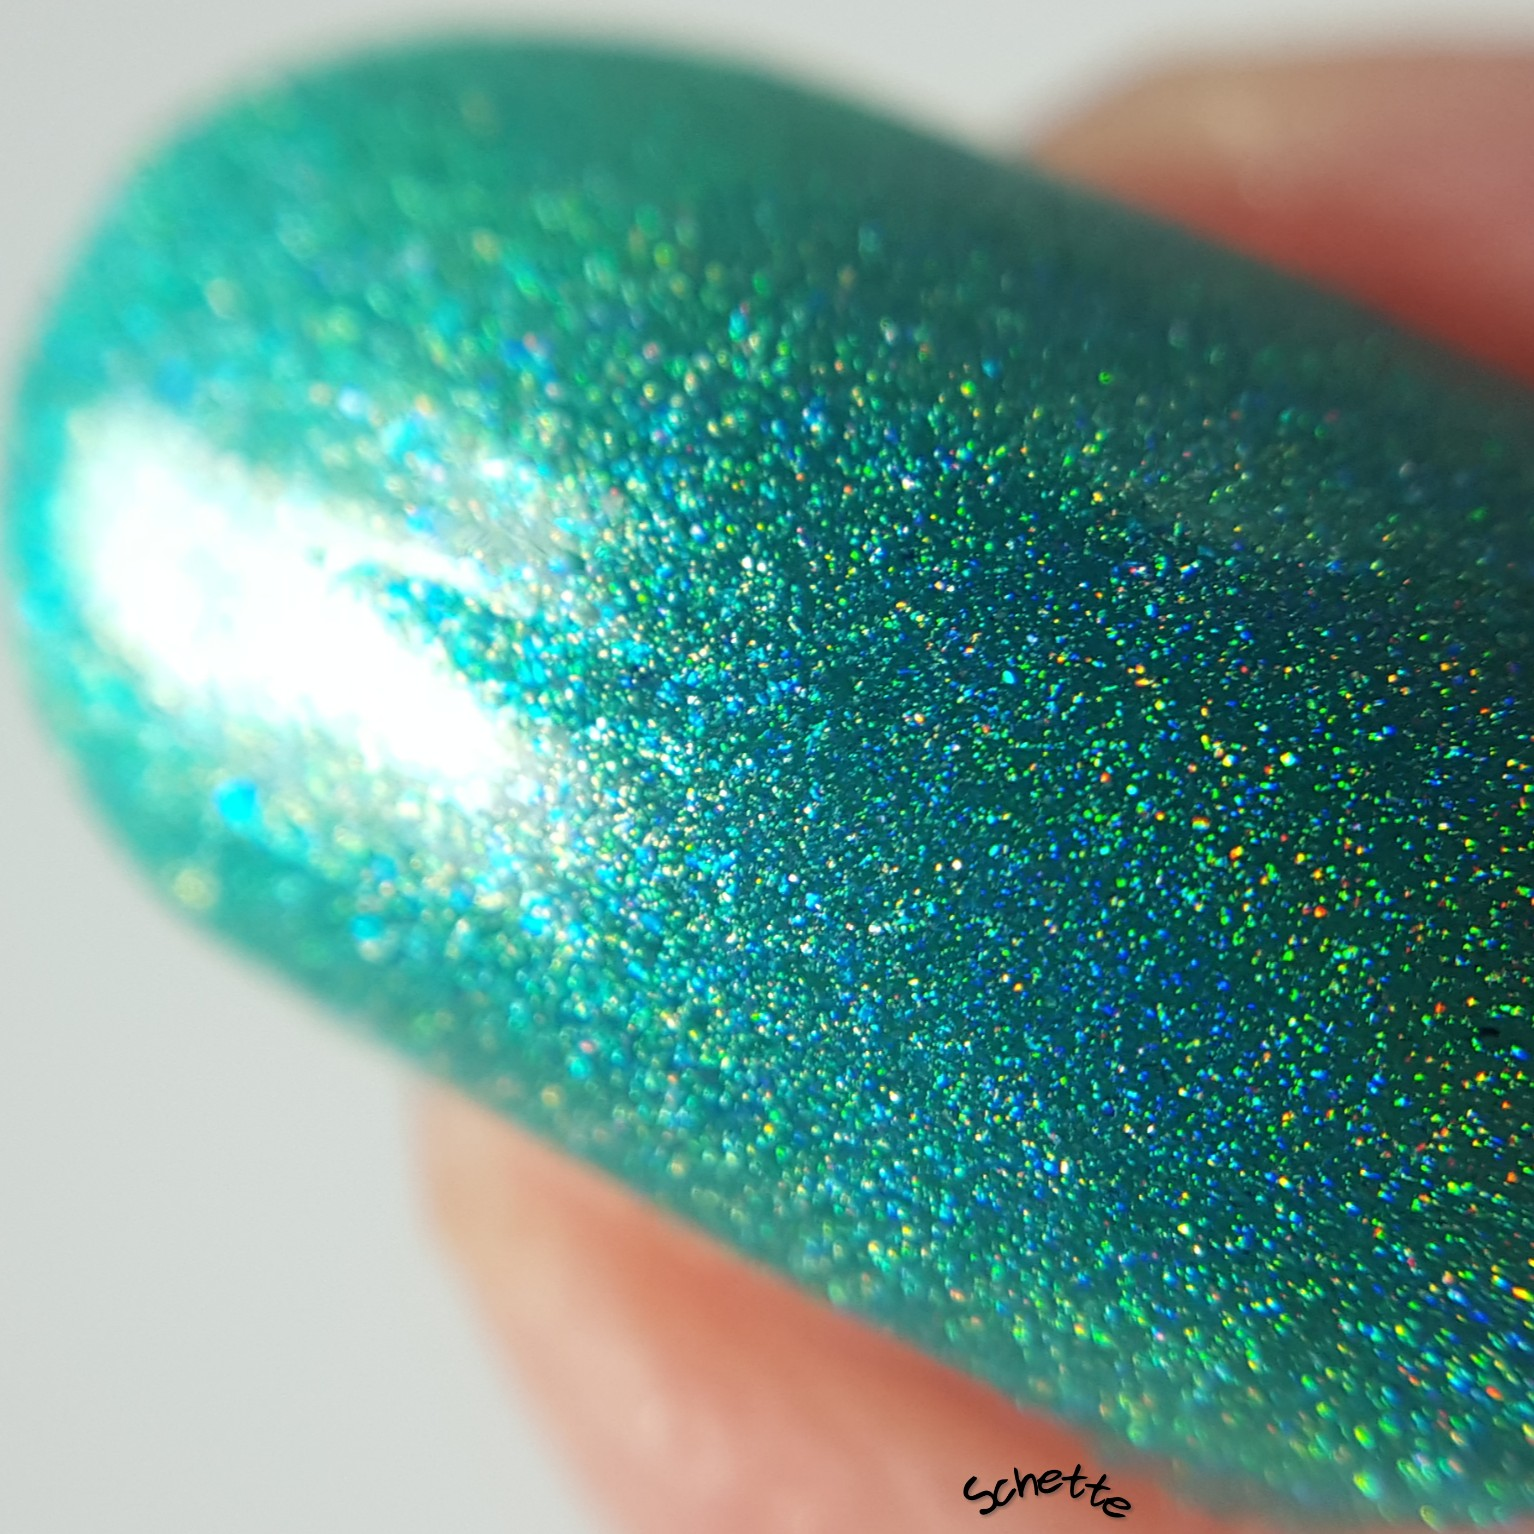 Girly Bits - Just my cup of Teal